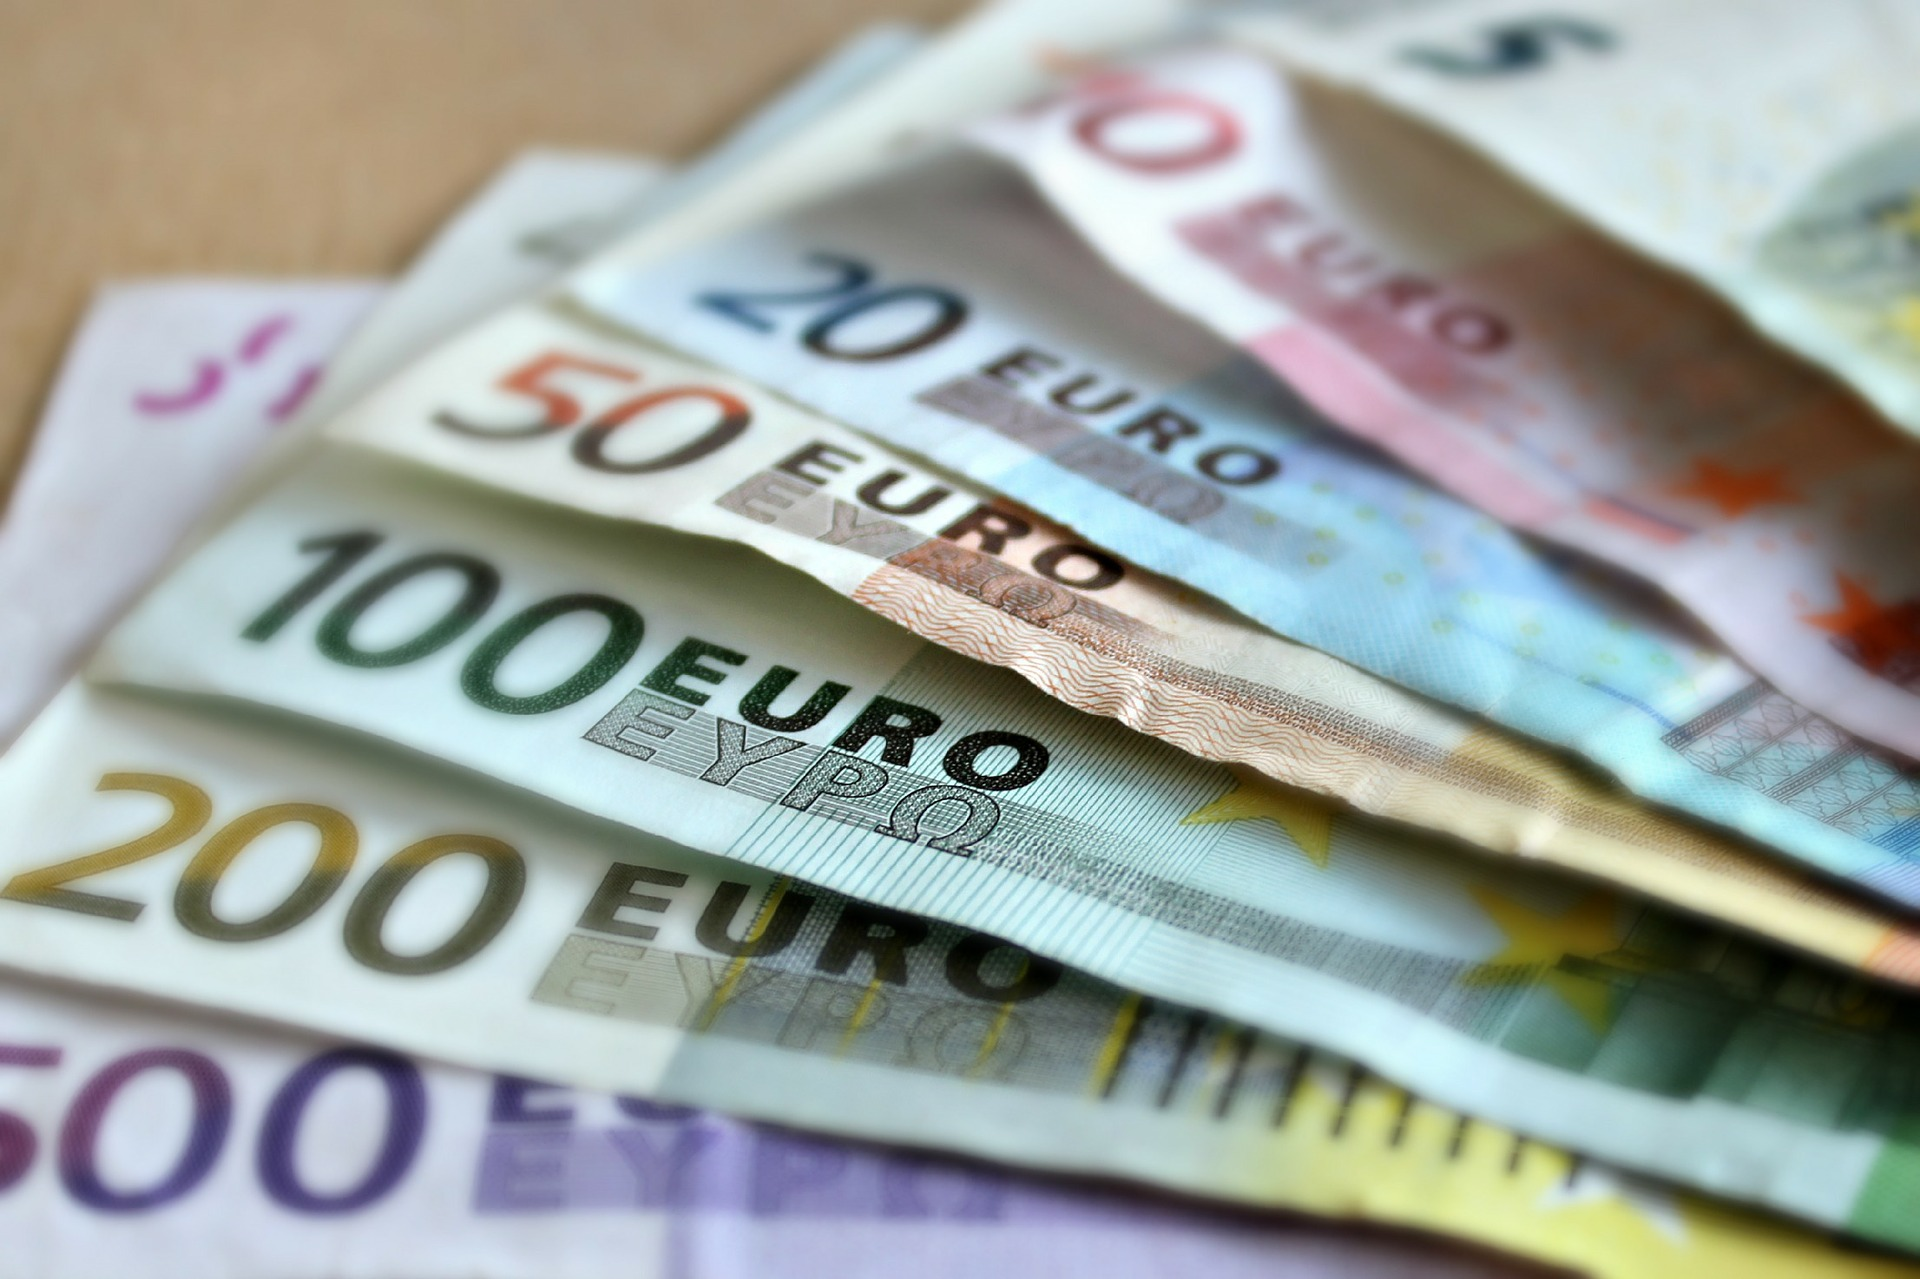 euro, martaposemuckel, https://pixabay.com/it/photos/banconota-euro-banconote-209104/ CC0